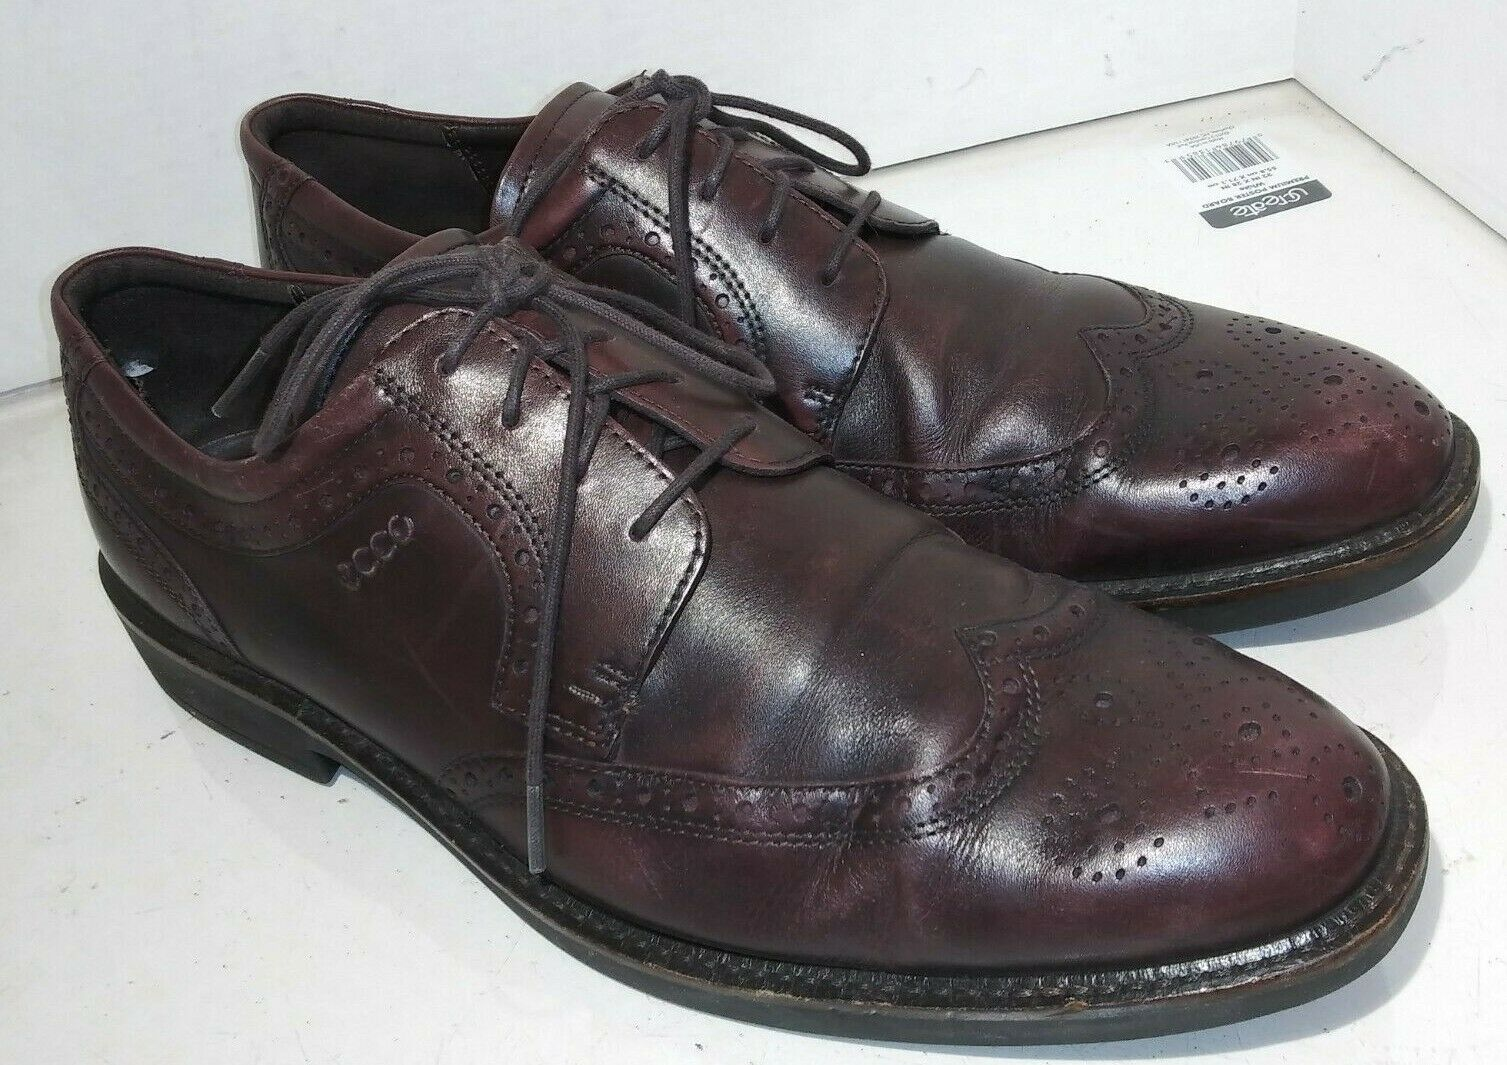 ECCO Mens MELBOURNE Cocoa Leather Wing Tip Dress shoes Size 13.5